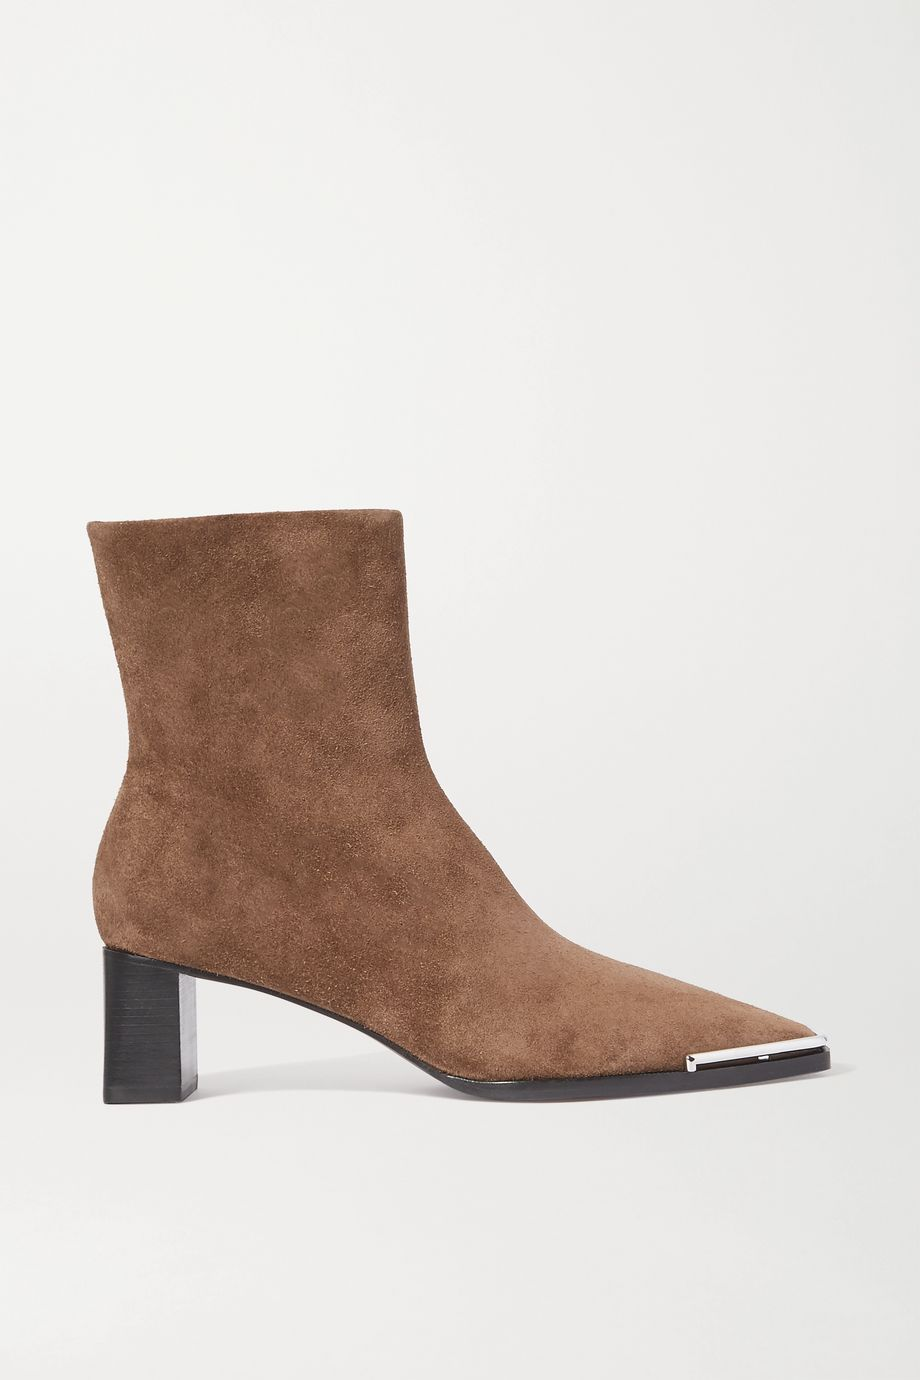 Alexander Wang Mascha embellished suede ankle boots